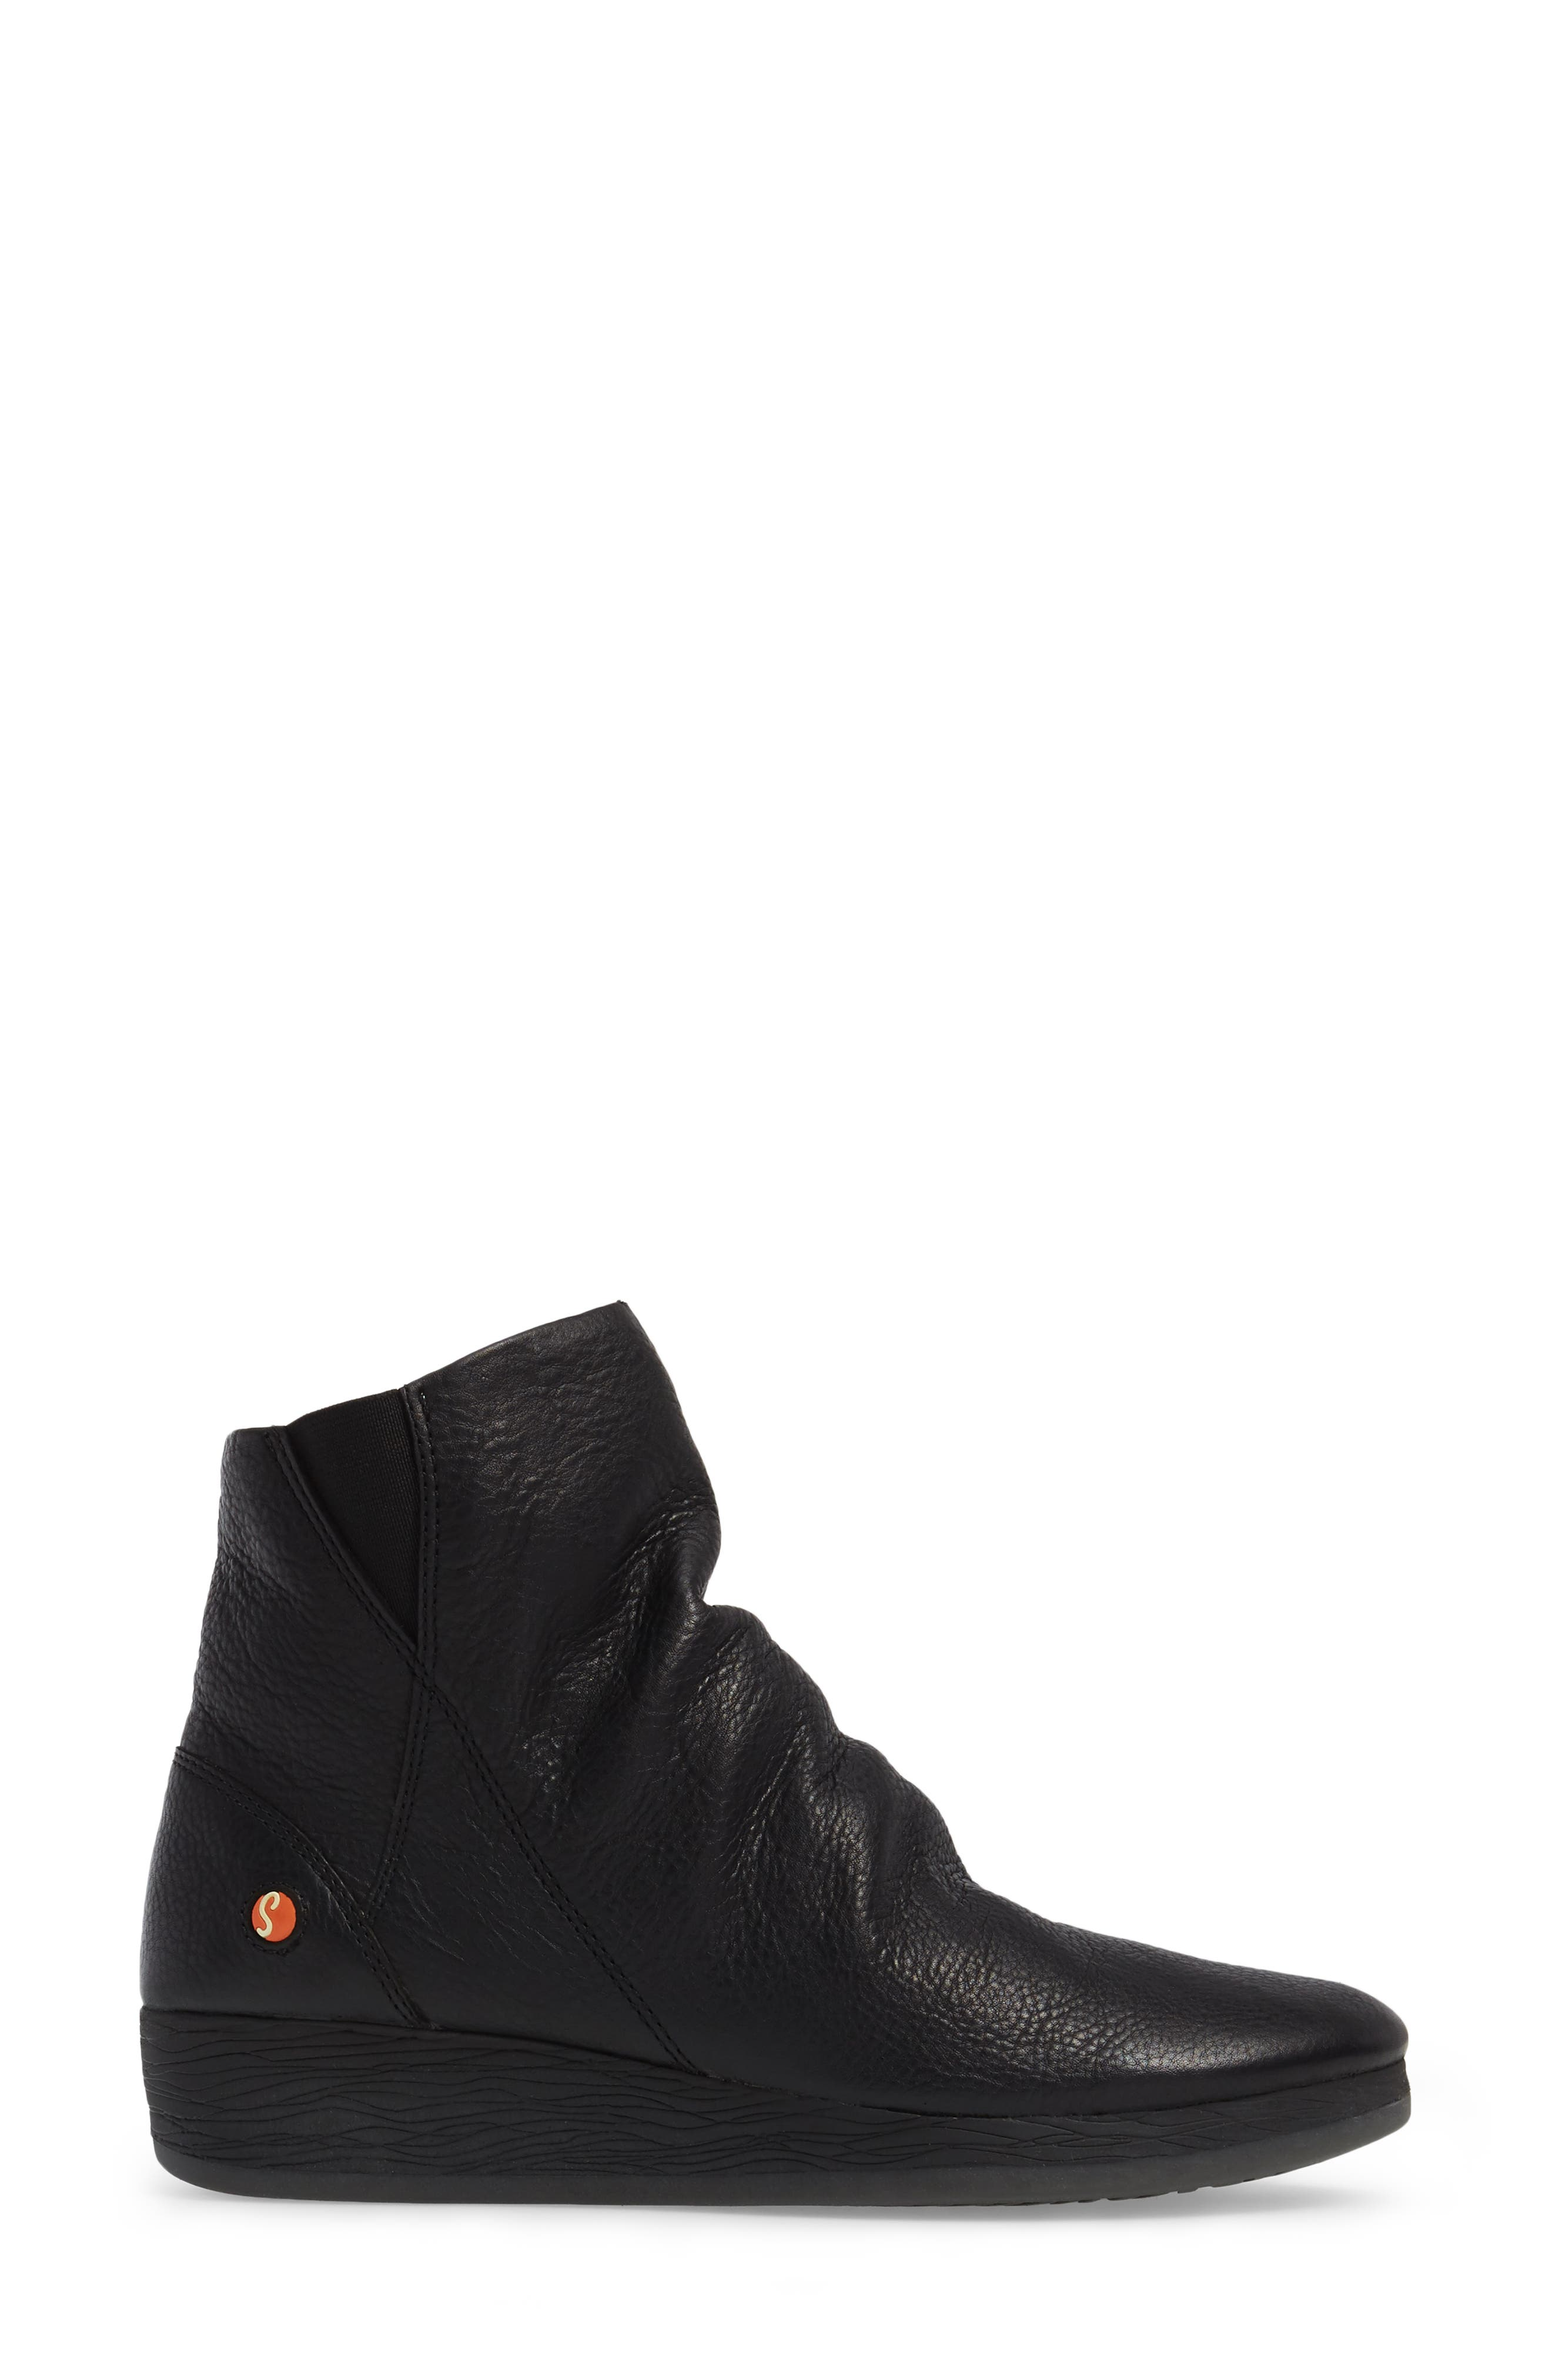 Alternate Image 3  - Softinos by Fly London Ayo Low Wedge Bootie (Women)